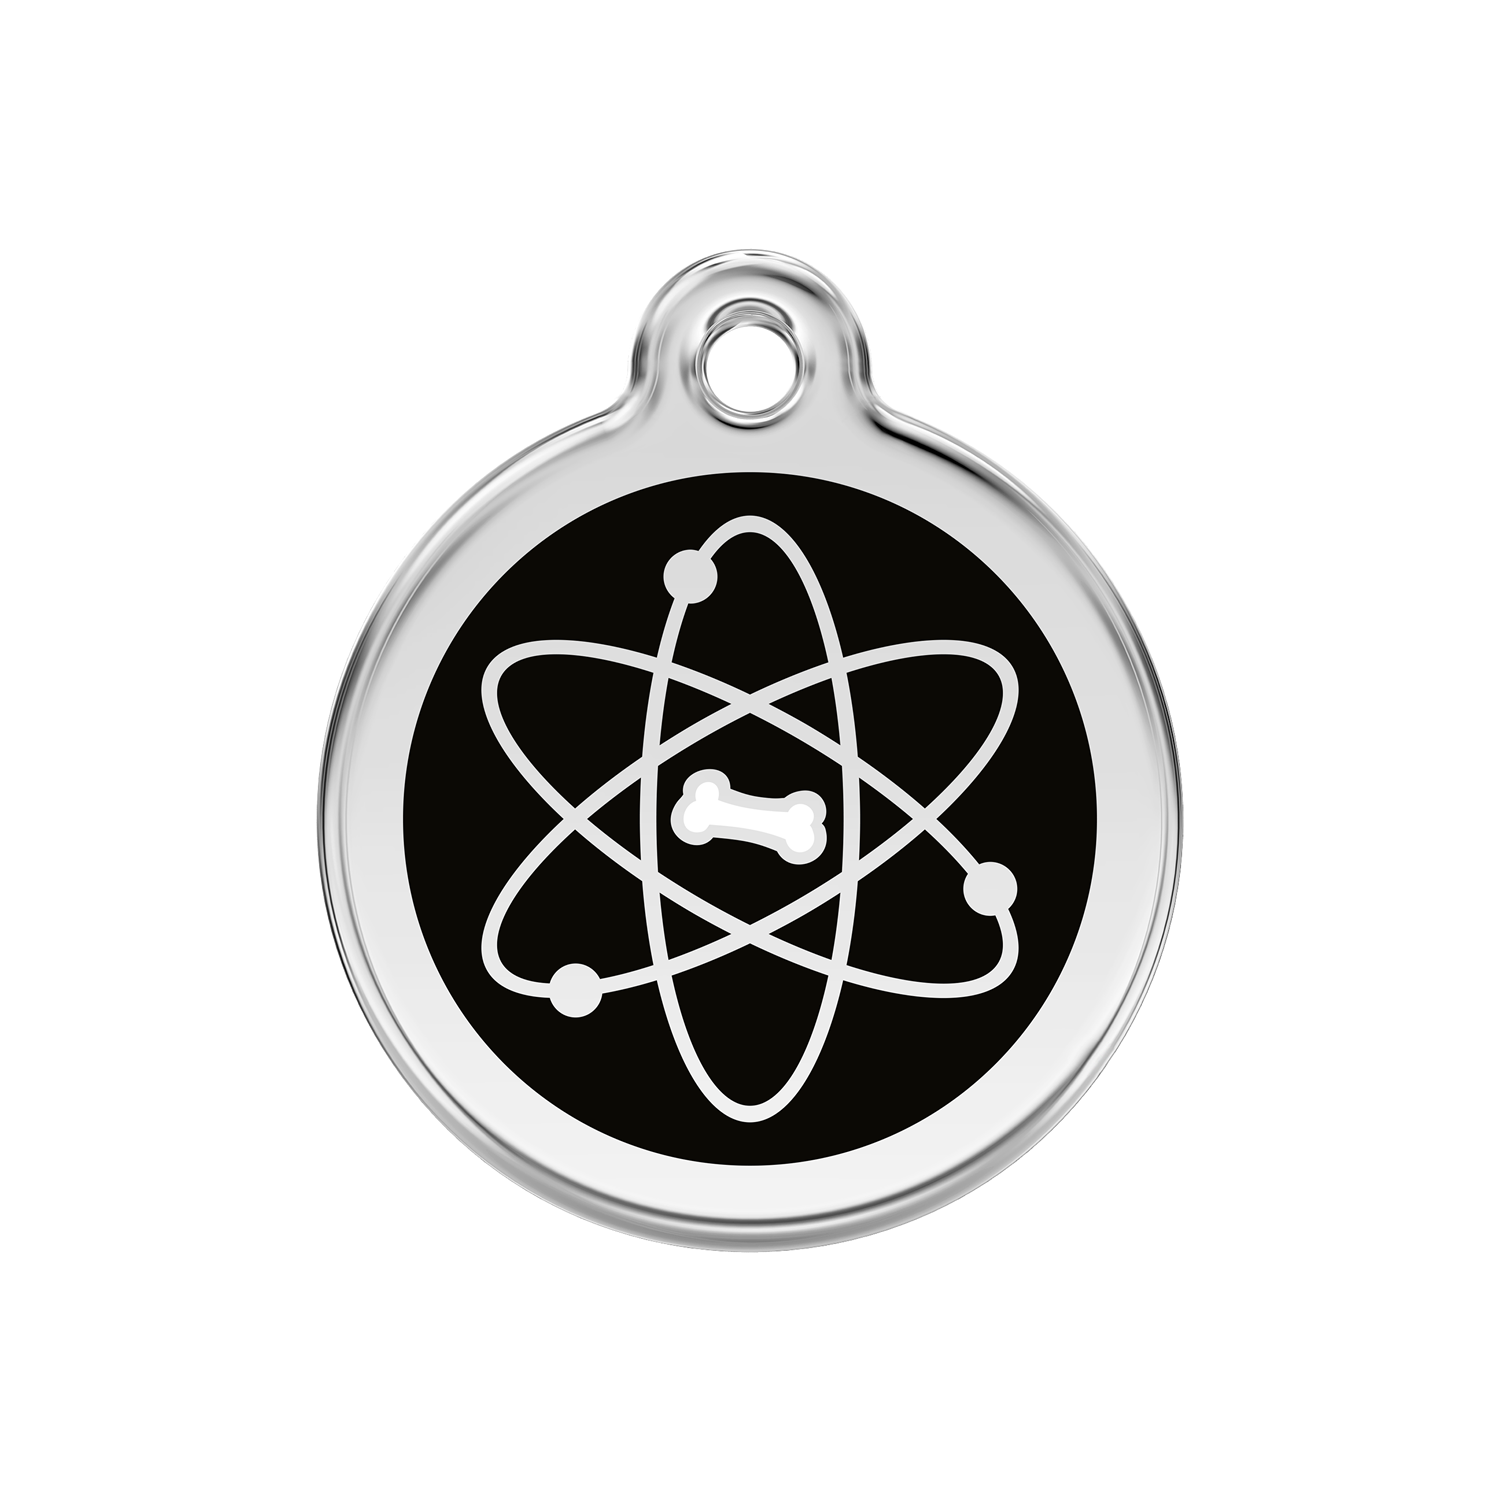 Black Atom Medium Enamel & Stainless Steel Tag>